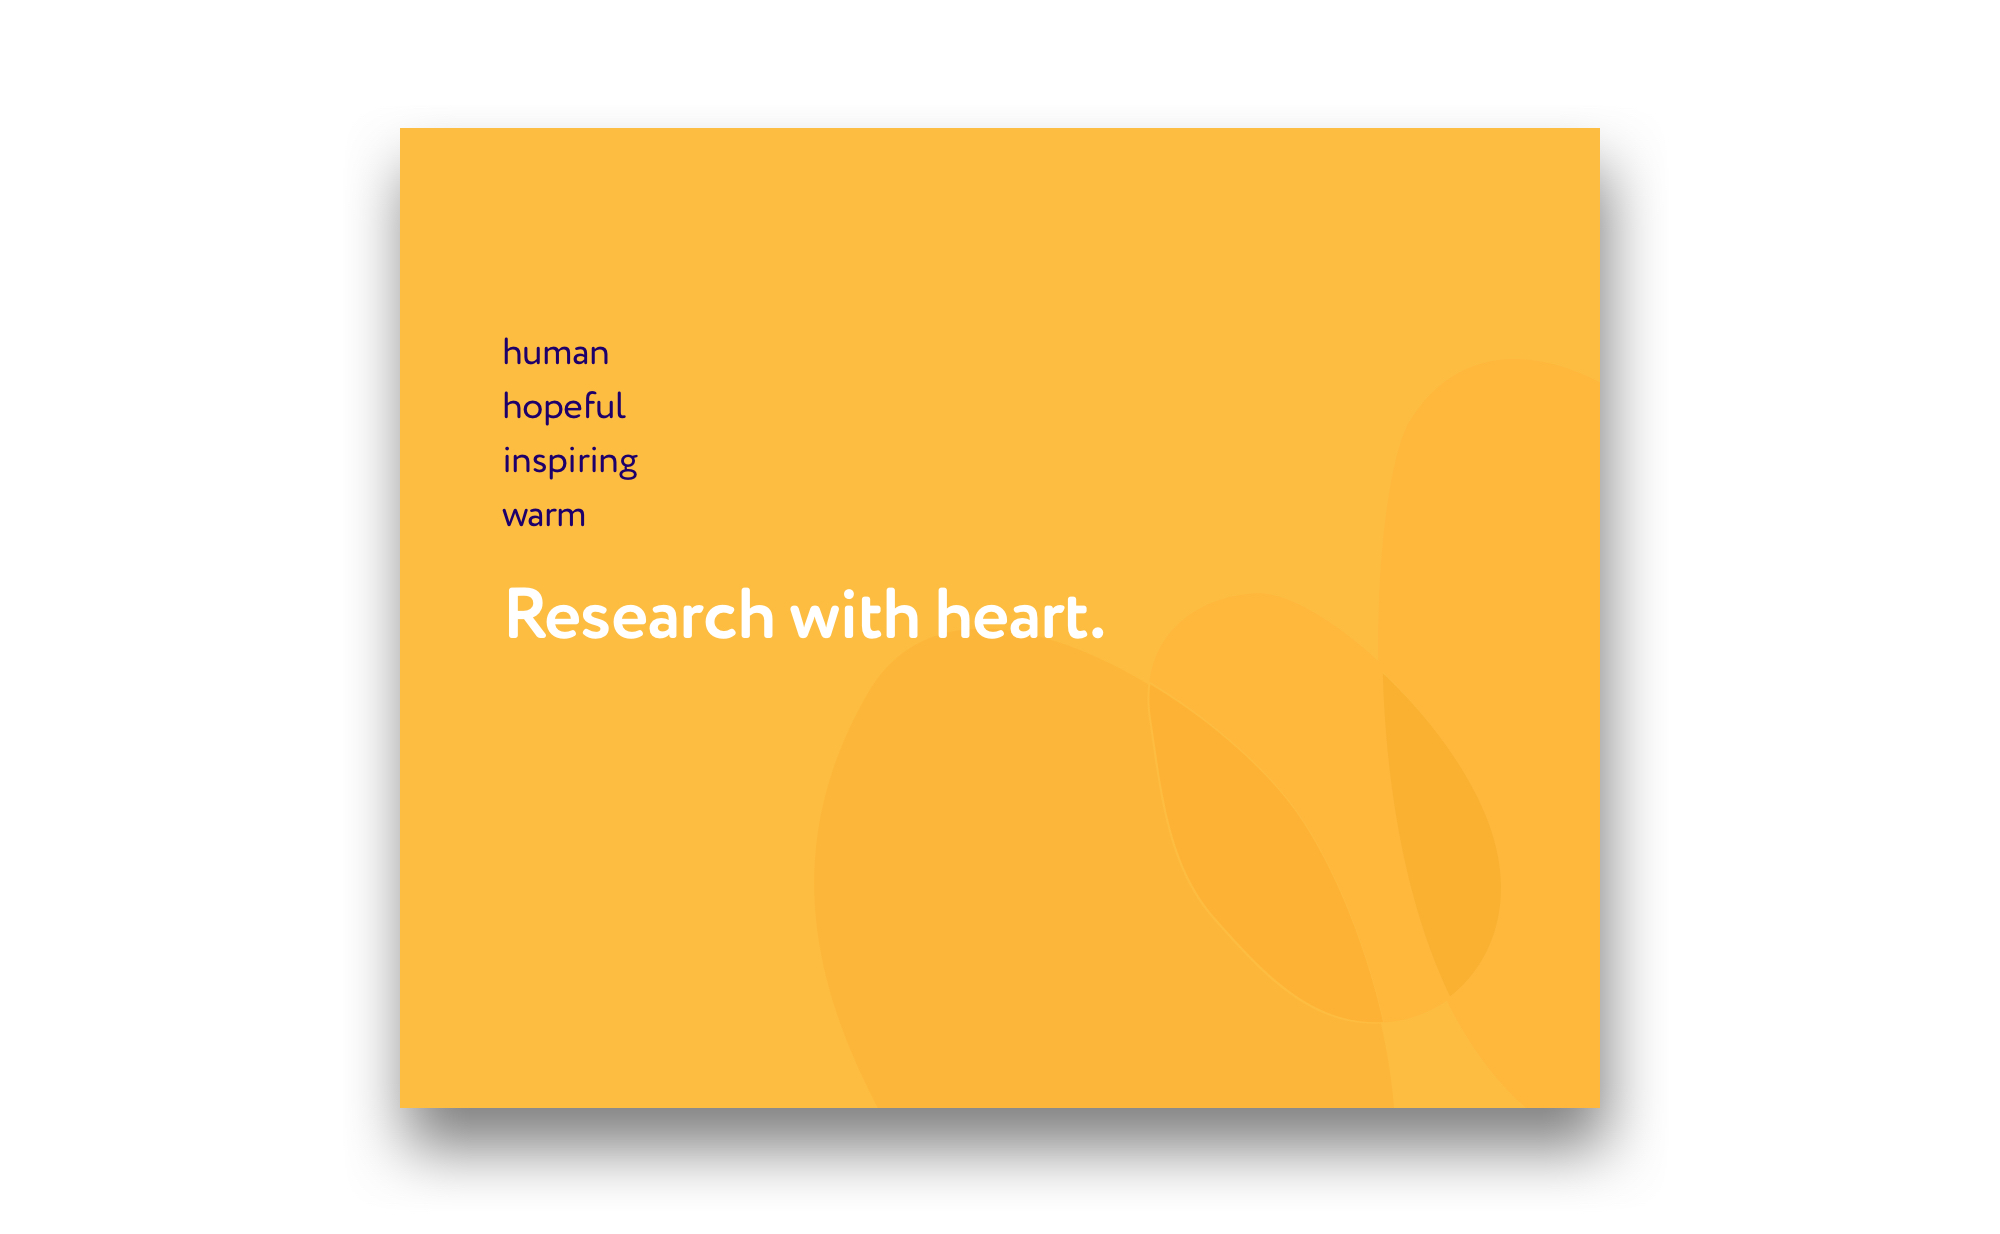 1-researchwithheart-cover copy.jpg